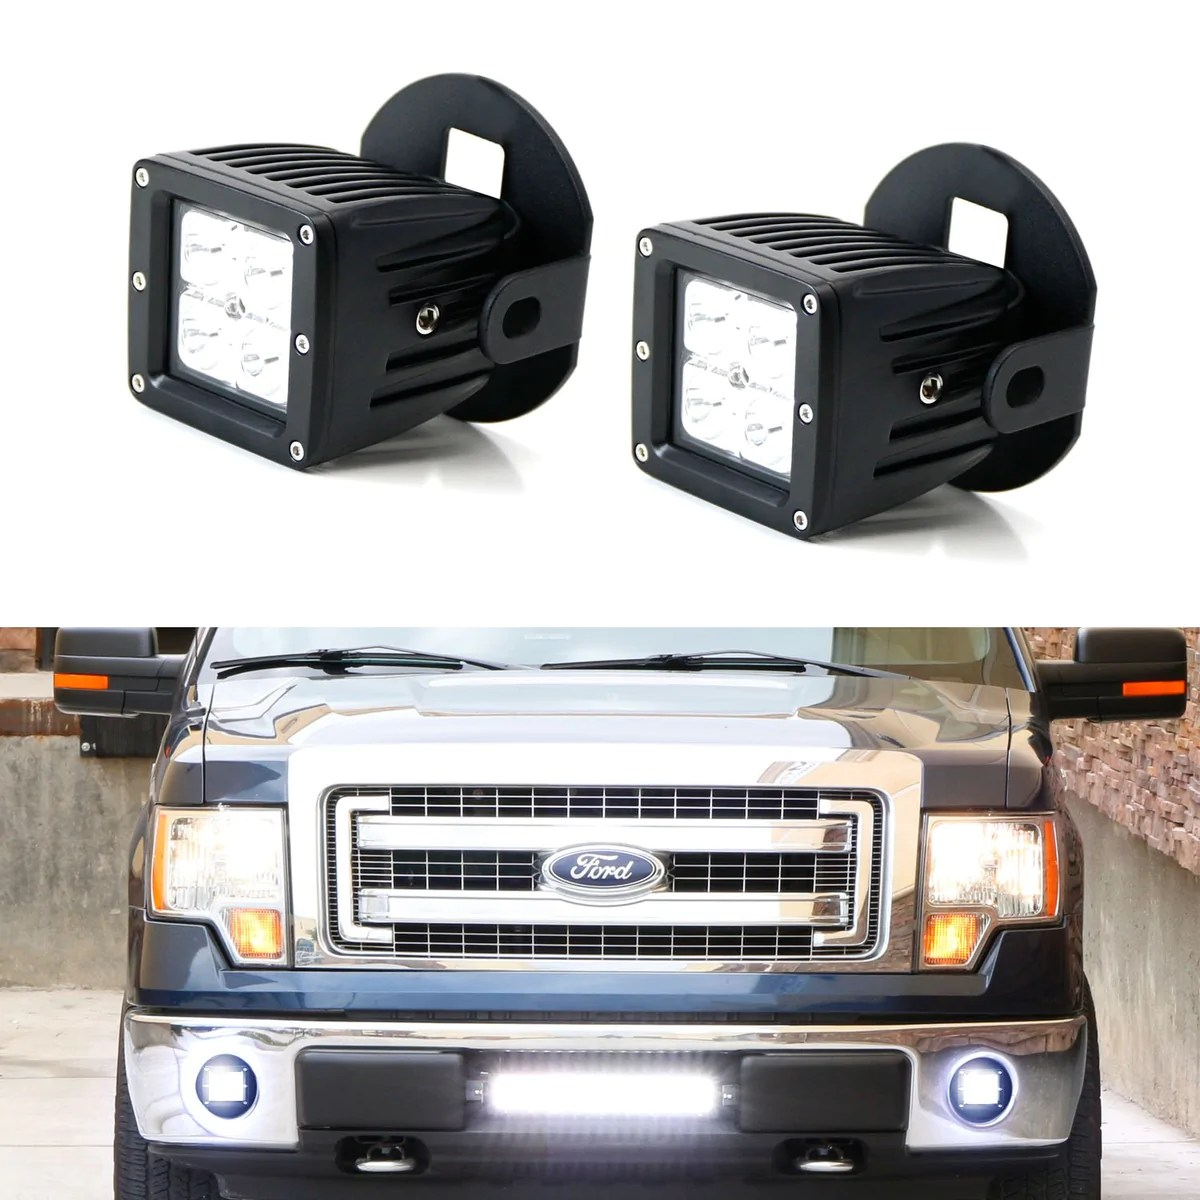 small resolution of led pod light fog lamp kit for 2006 14 ford f150 2011 14 lincoln mark lt includes 2 20w high power cree led cubes foglight location mounting brackets